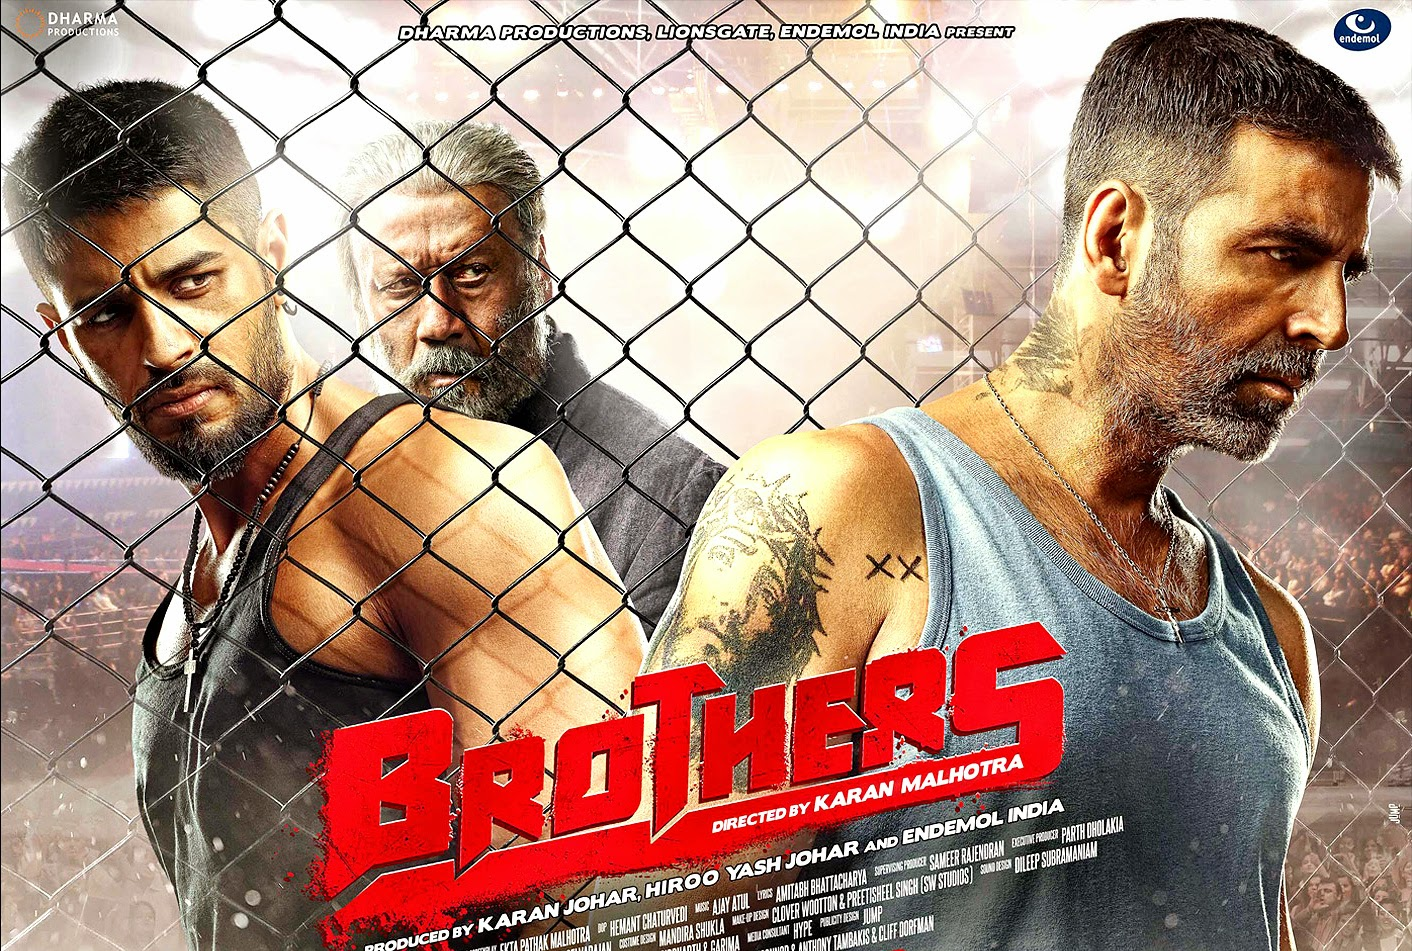 Brothers 2015 Bollywood Movie 1080p HD Wallpapers KT HD Wallpapers 1412x951